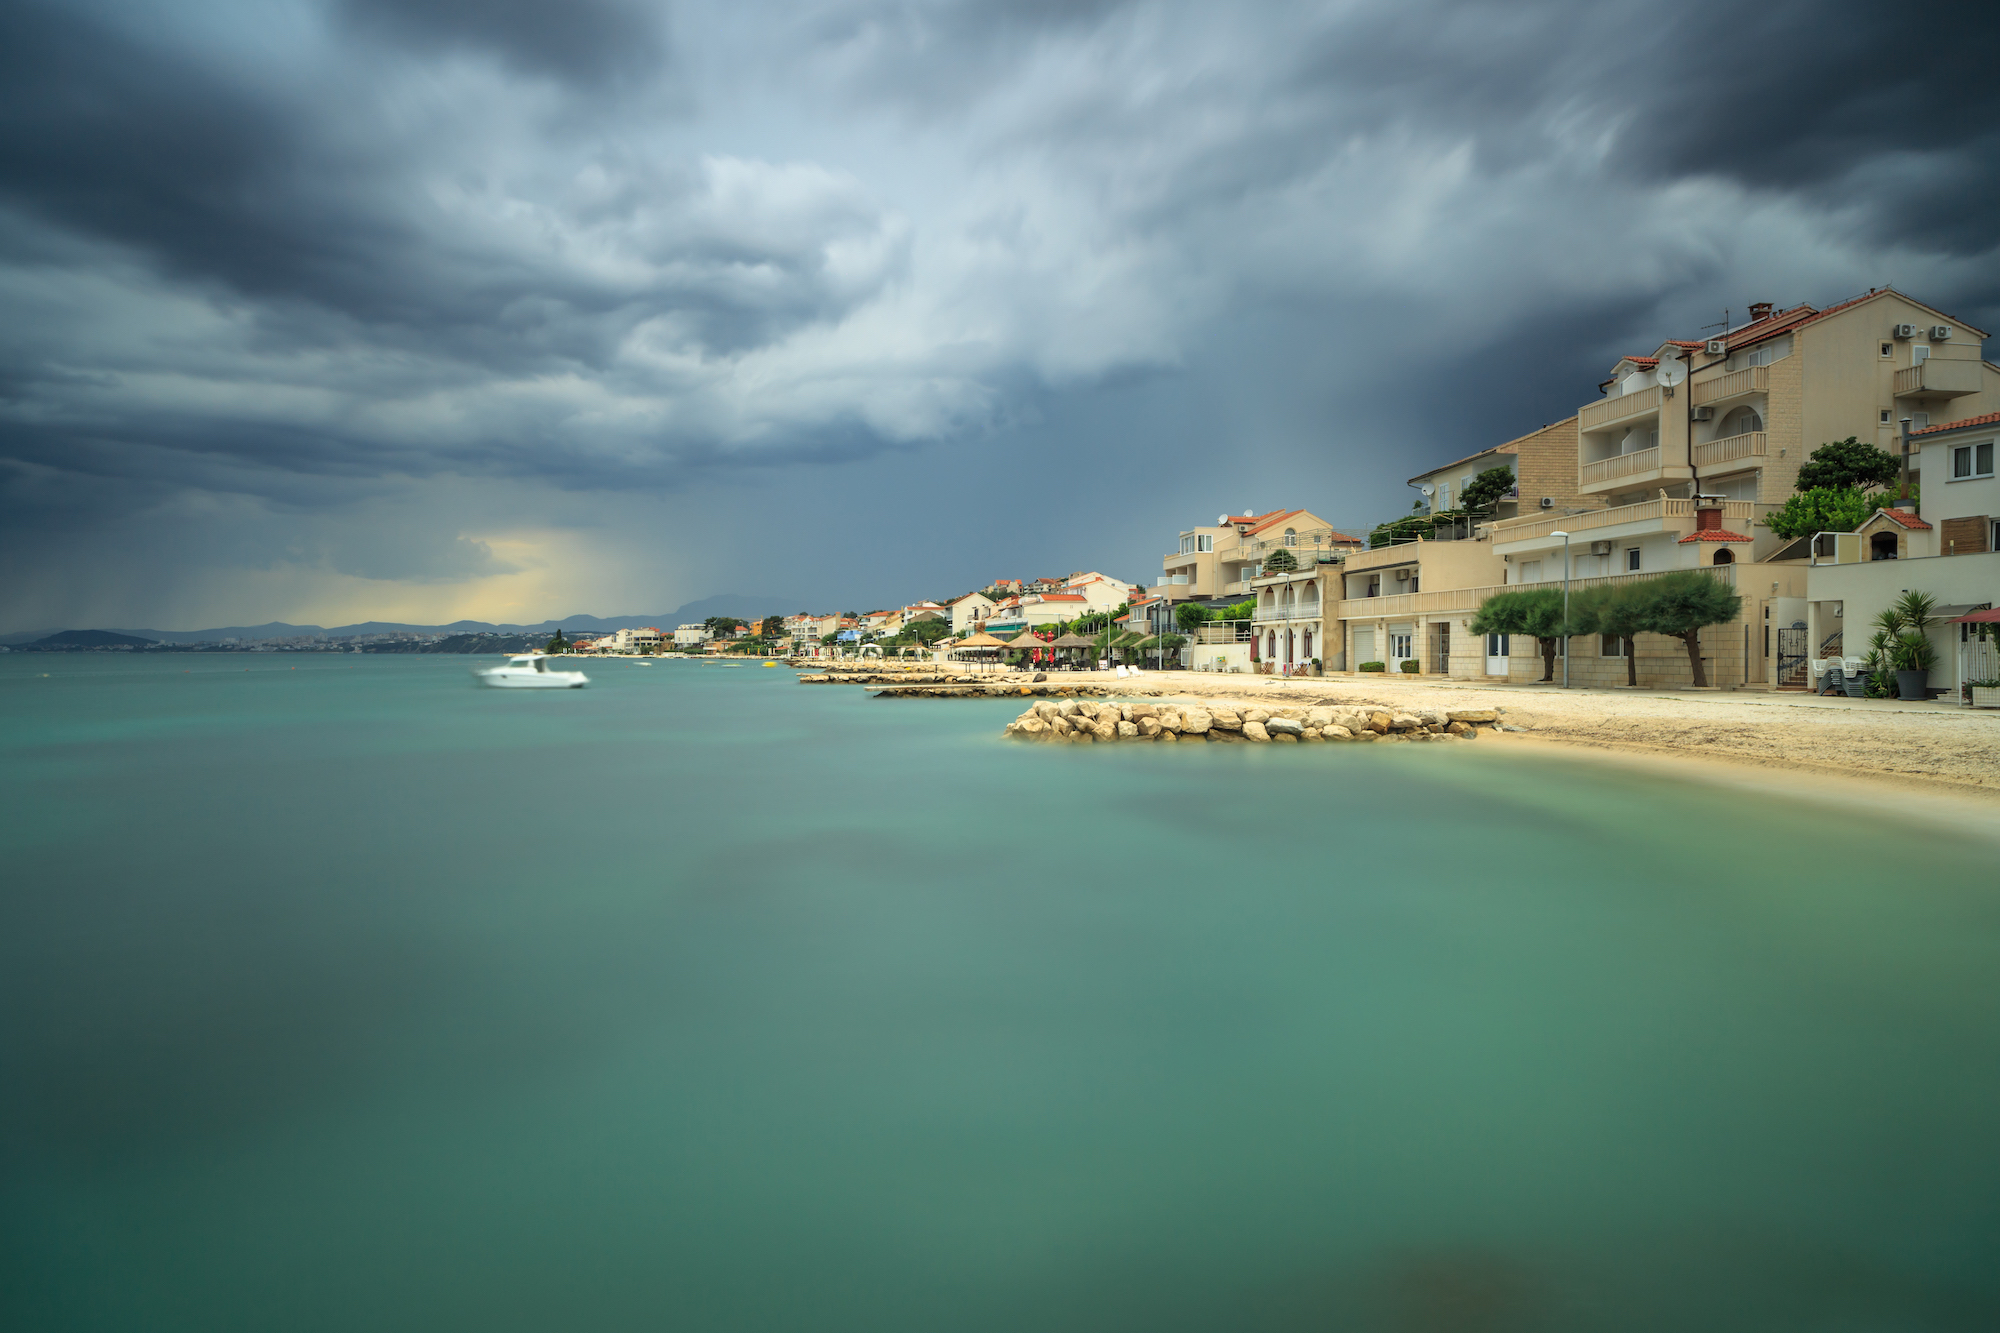 View on adriatic coast line before the storm in Croatia example image 1